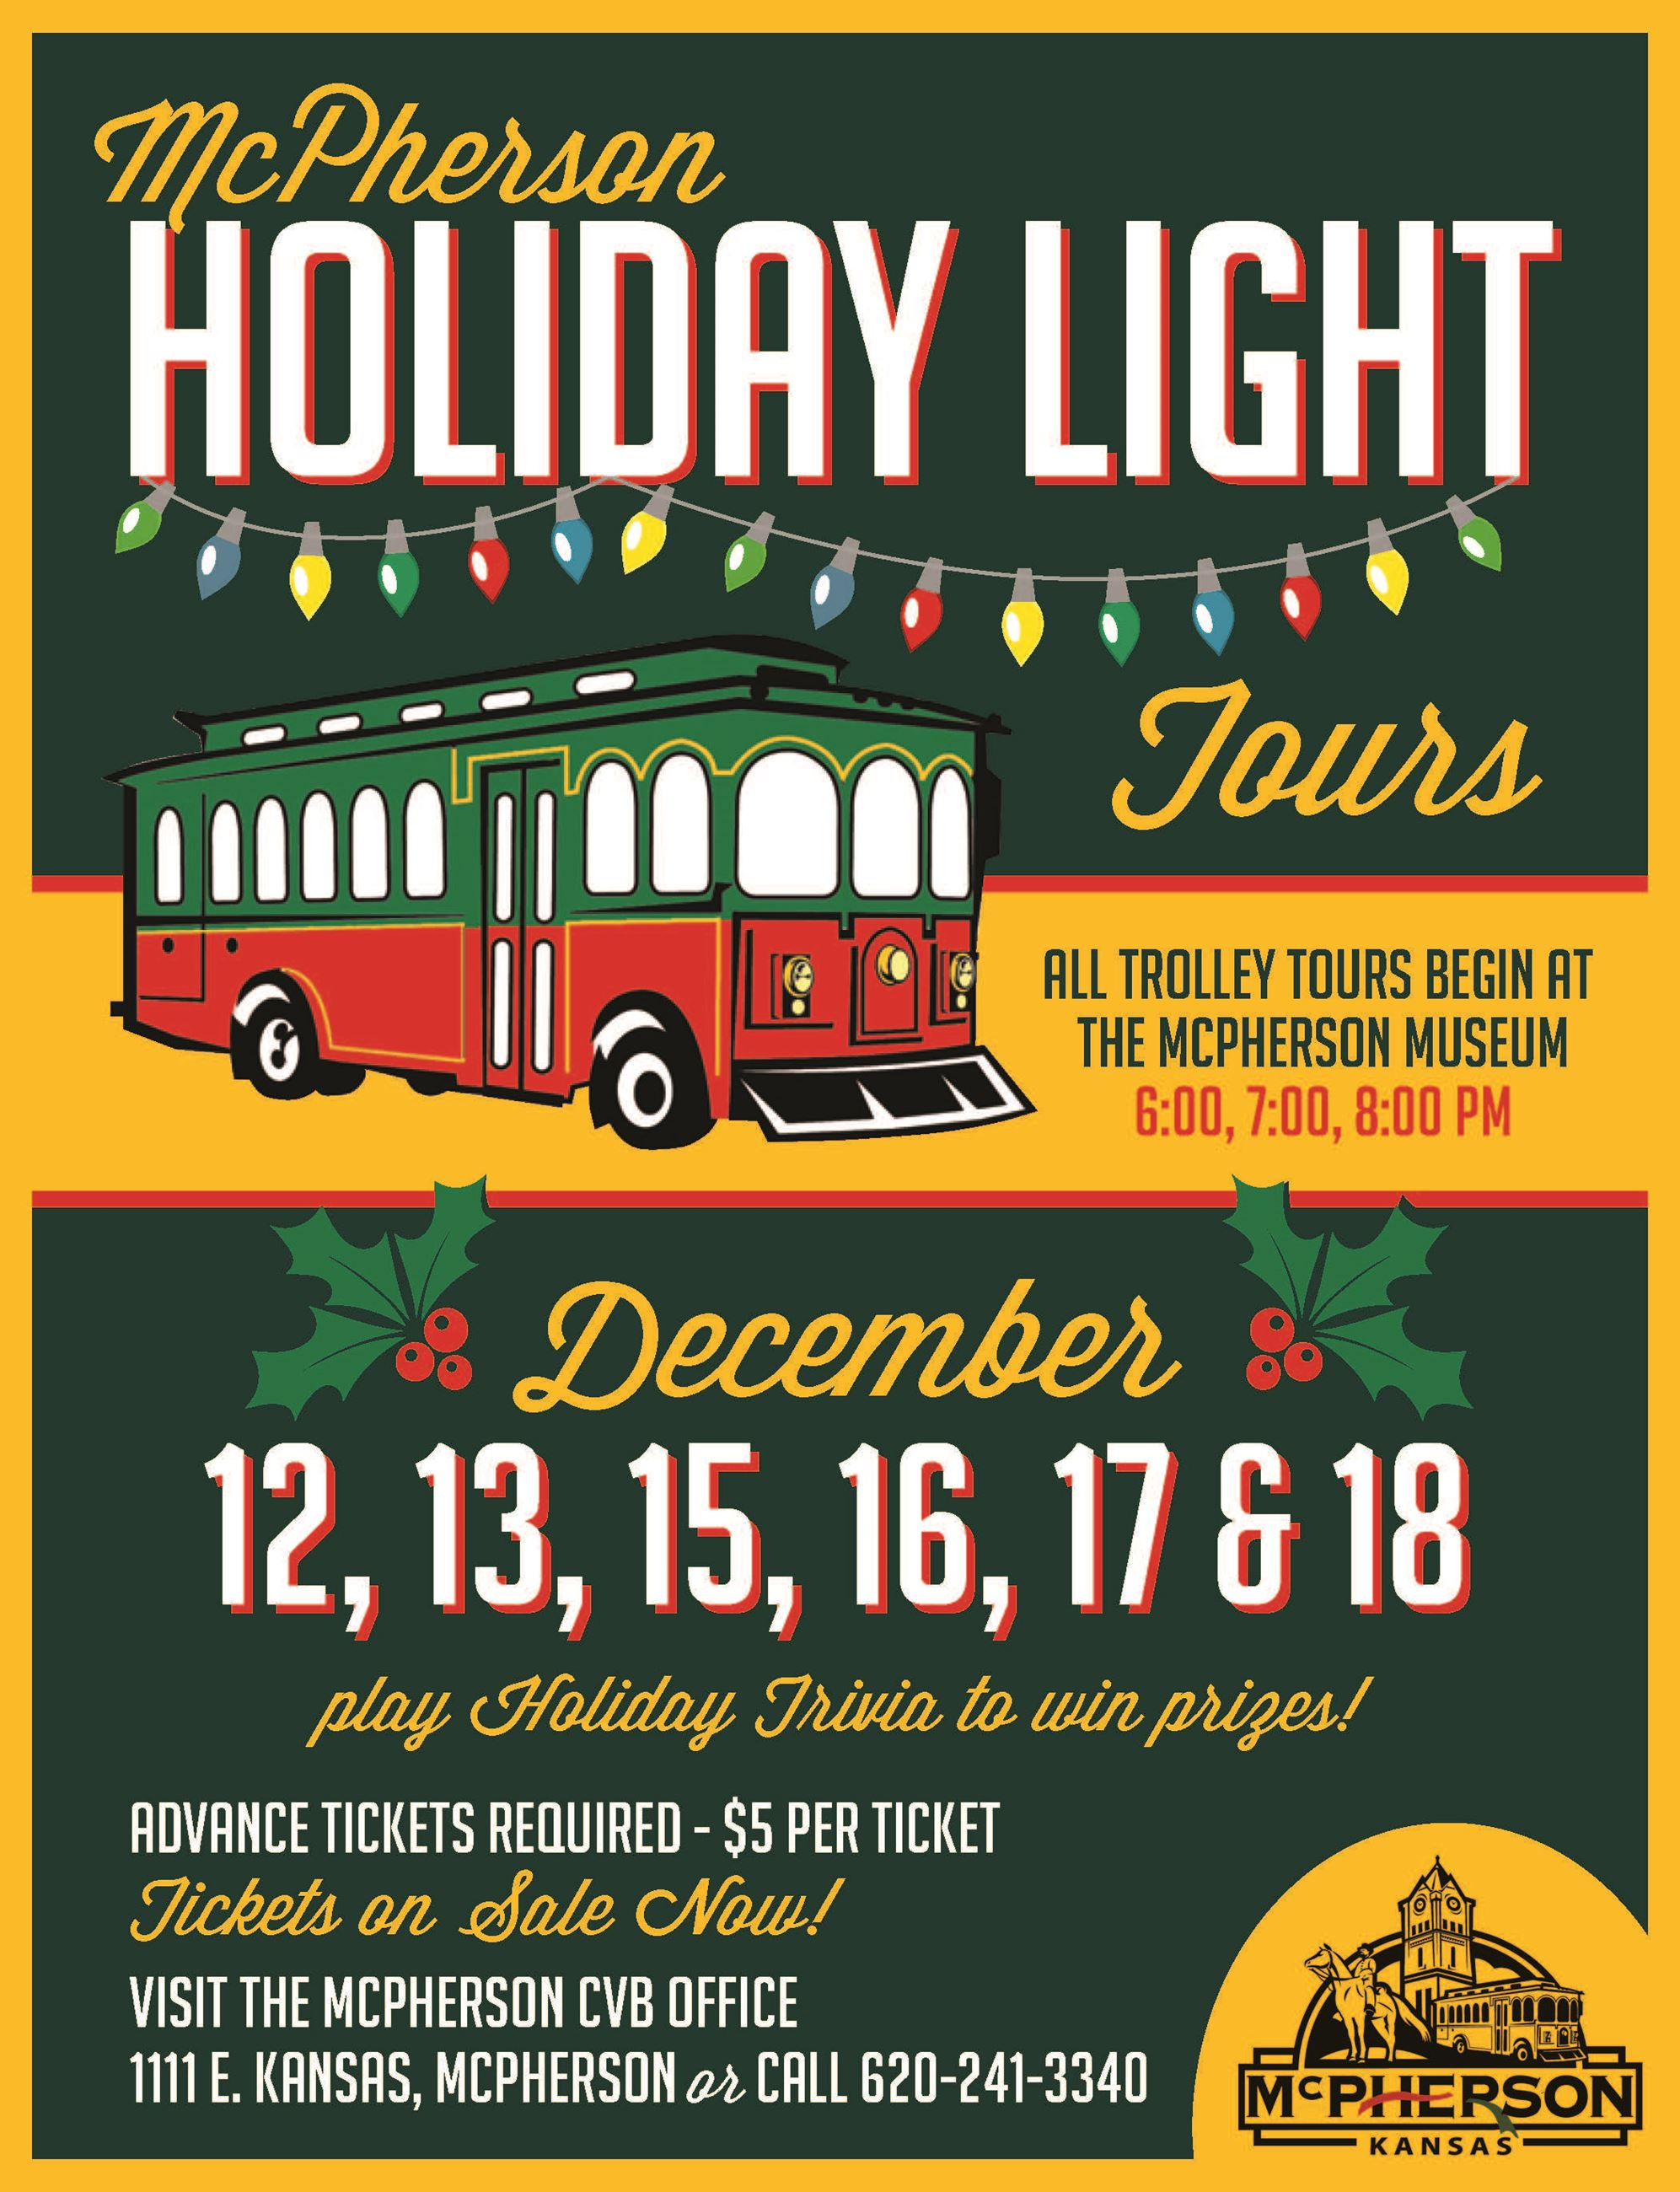 Poster using a cartoon trolley to promote the Holiday Lights Tour